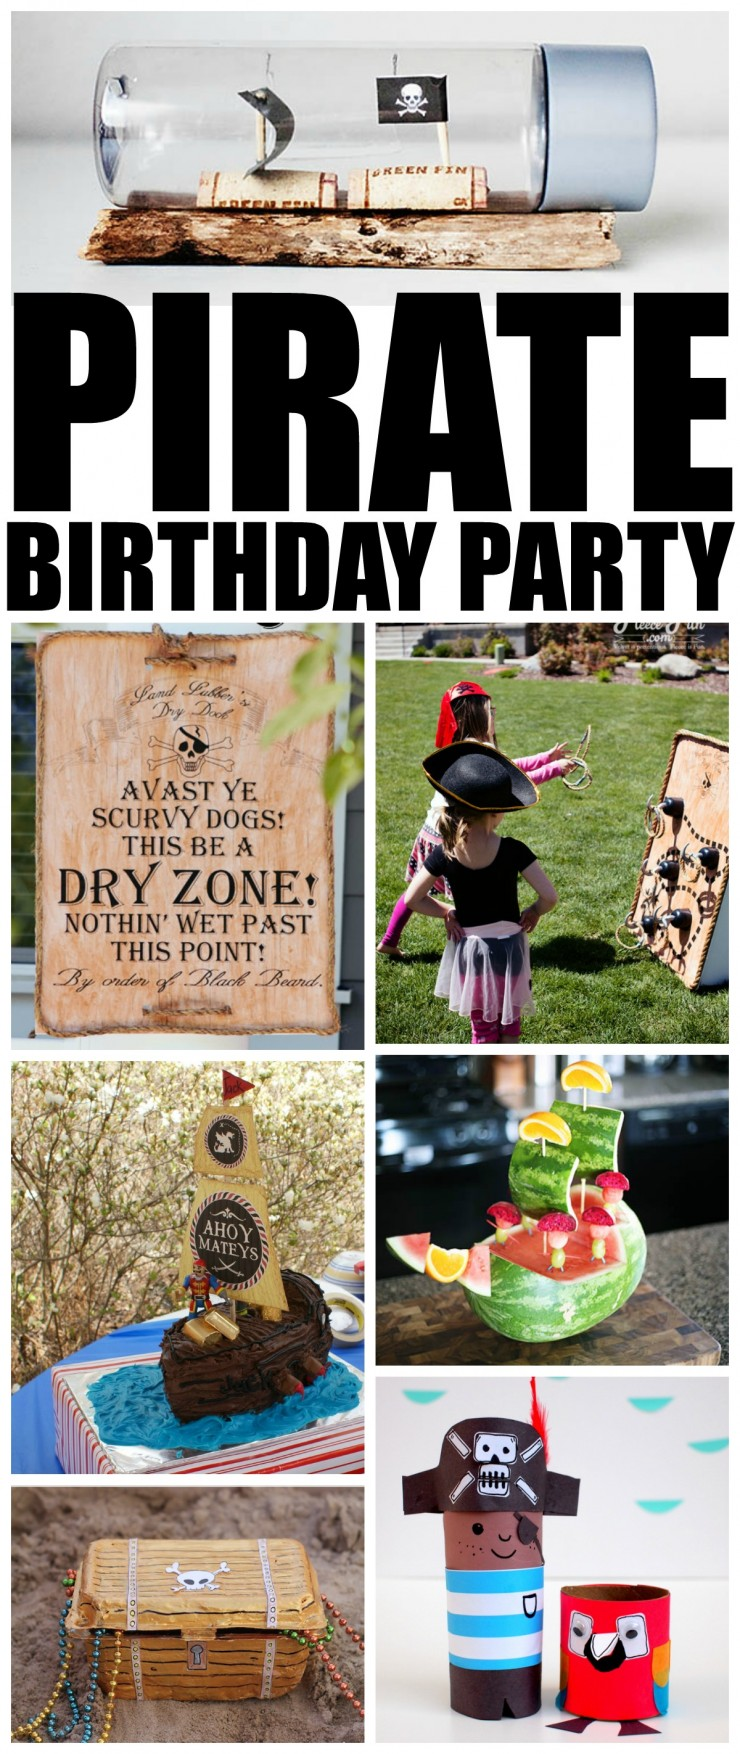 How to Throw the Ultimate Pirate Birthday Party to please any birthday girl or boy. Little kids tend to love pirates. They just capture their imaginations! For many kids, a pirate themed birthday party is a natural choice. Check out these 25 ideas that will help you throw an amazing pirate themed party for kids!